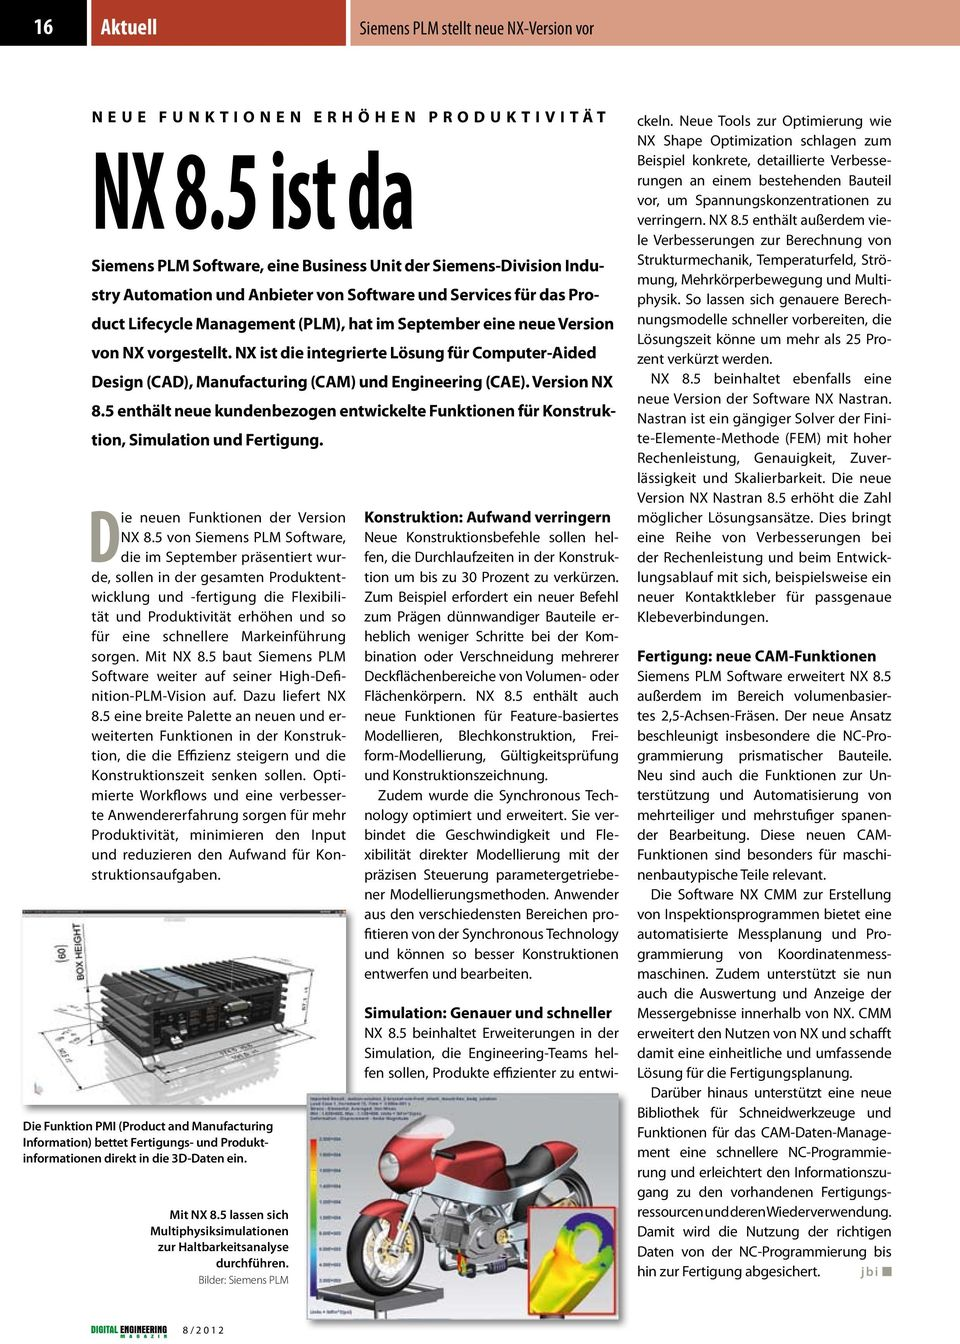 neue Version von NX vorgestellt. NX ist die integrierte Lösung für Computer-Aided Design (CAD), Manufacturing (CAM) und Engineering (CAE). Version NX 8.